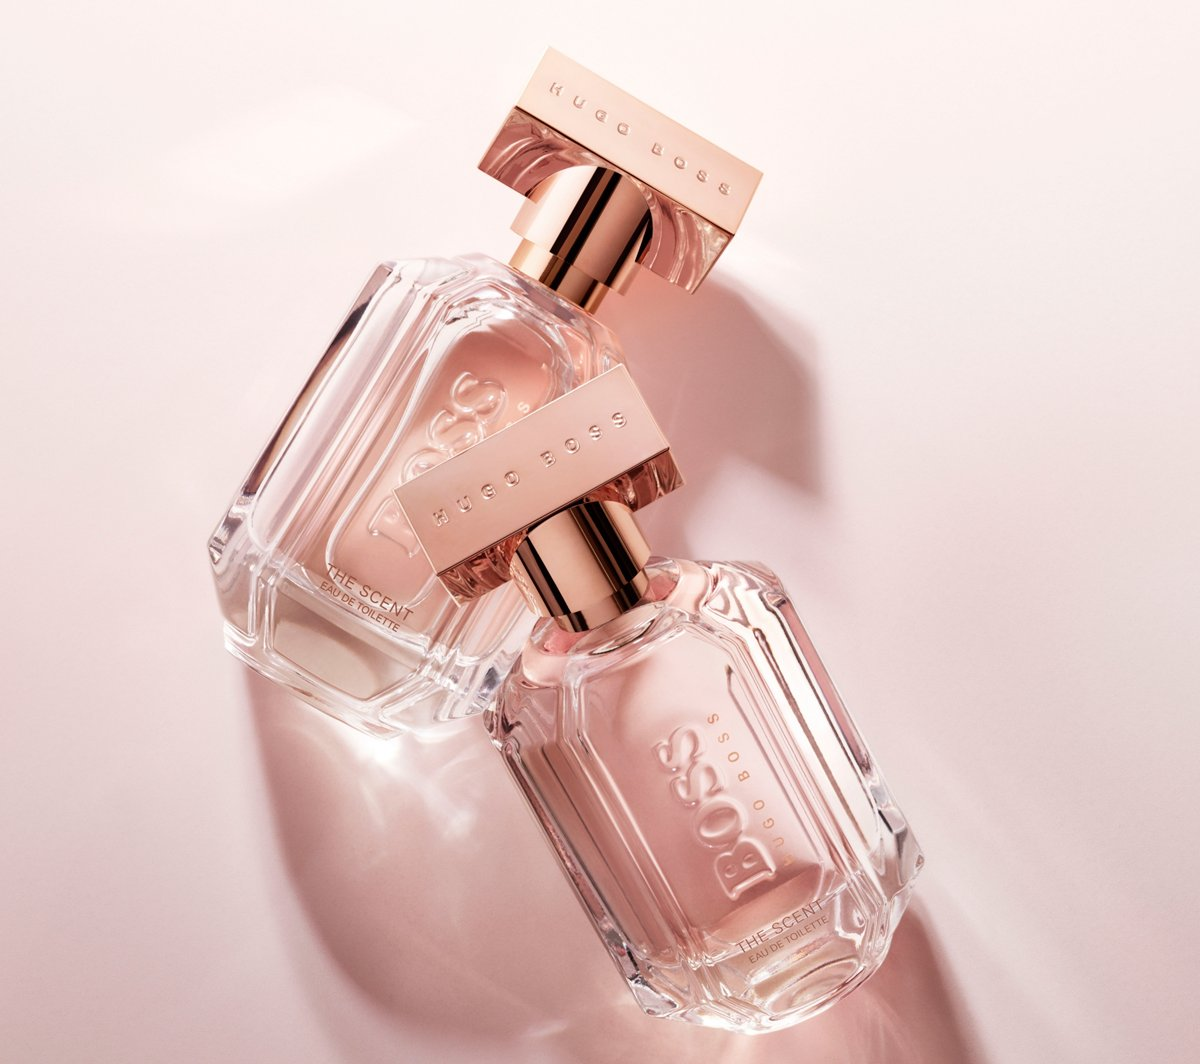 Flacon of Boss The Scent EDT for her ... d5e7cc75922